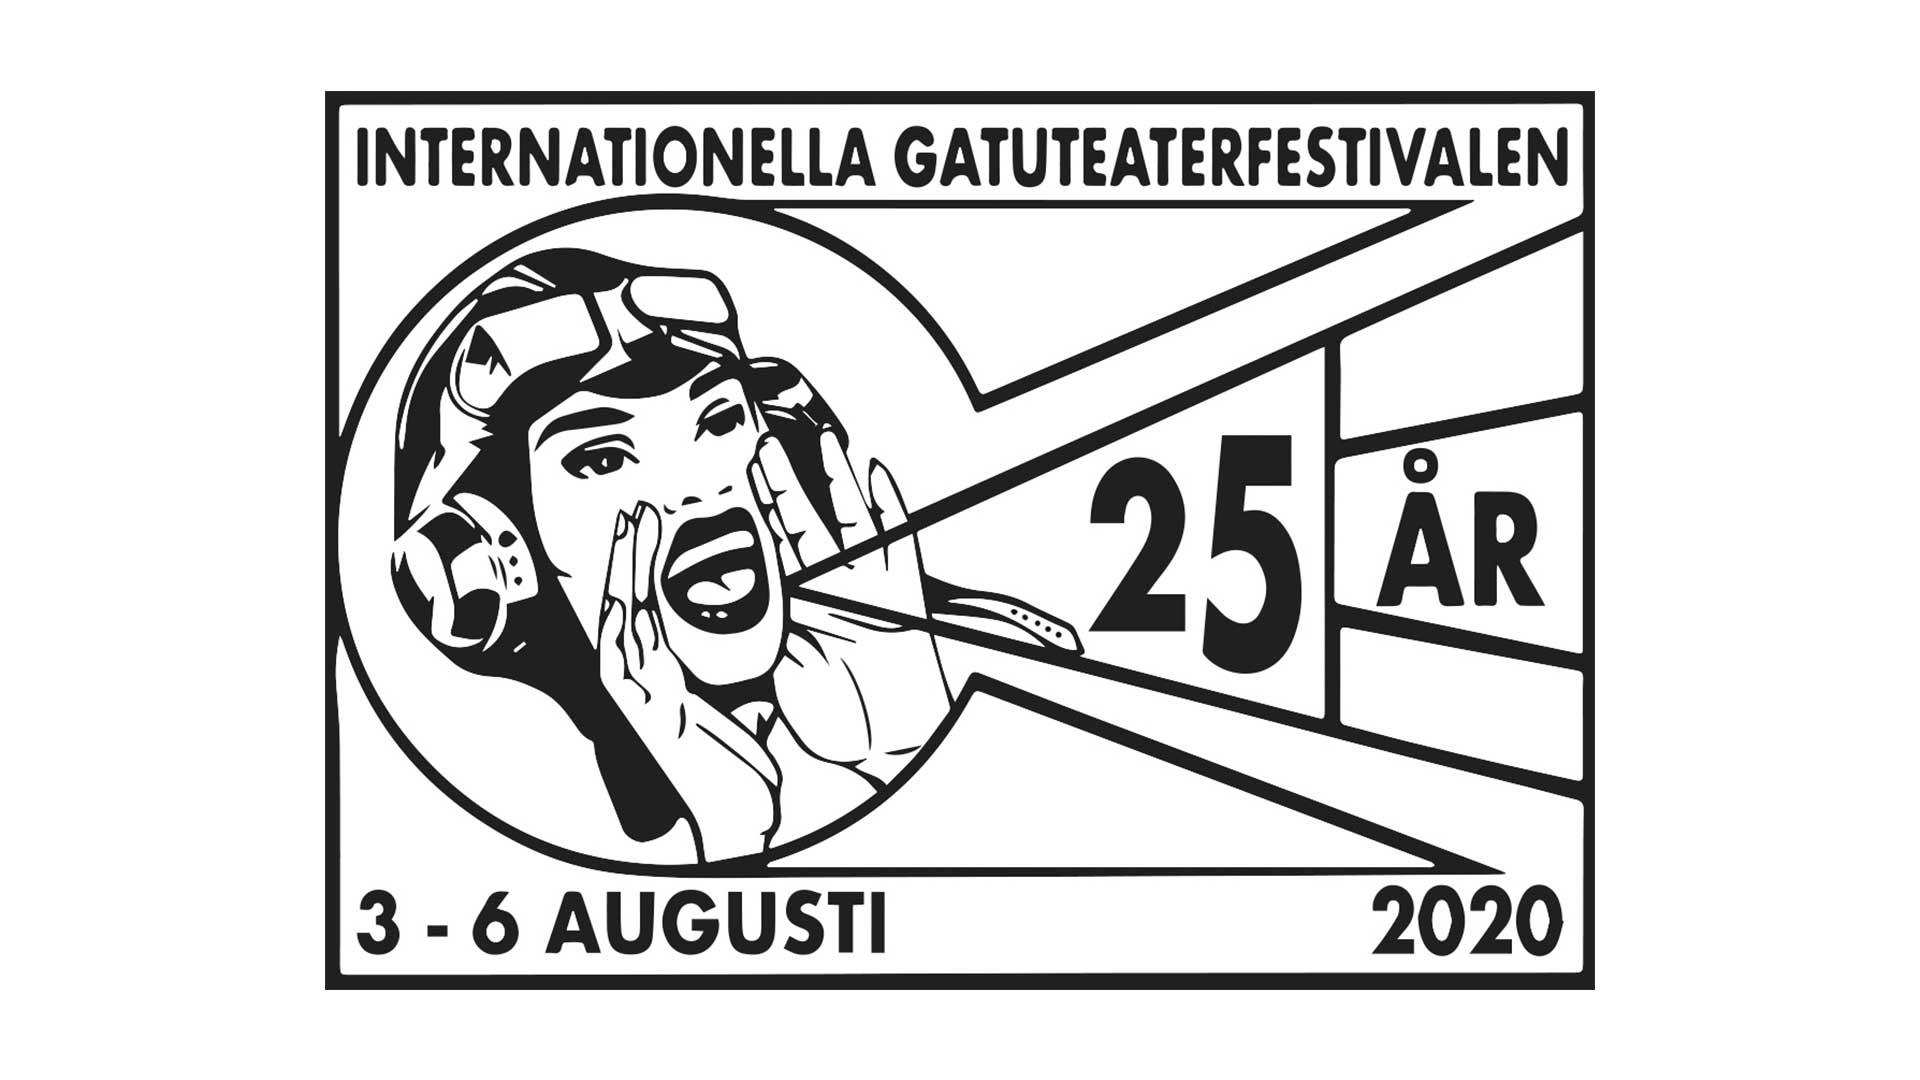 Internationella Gatuteaterfestivalen